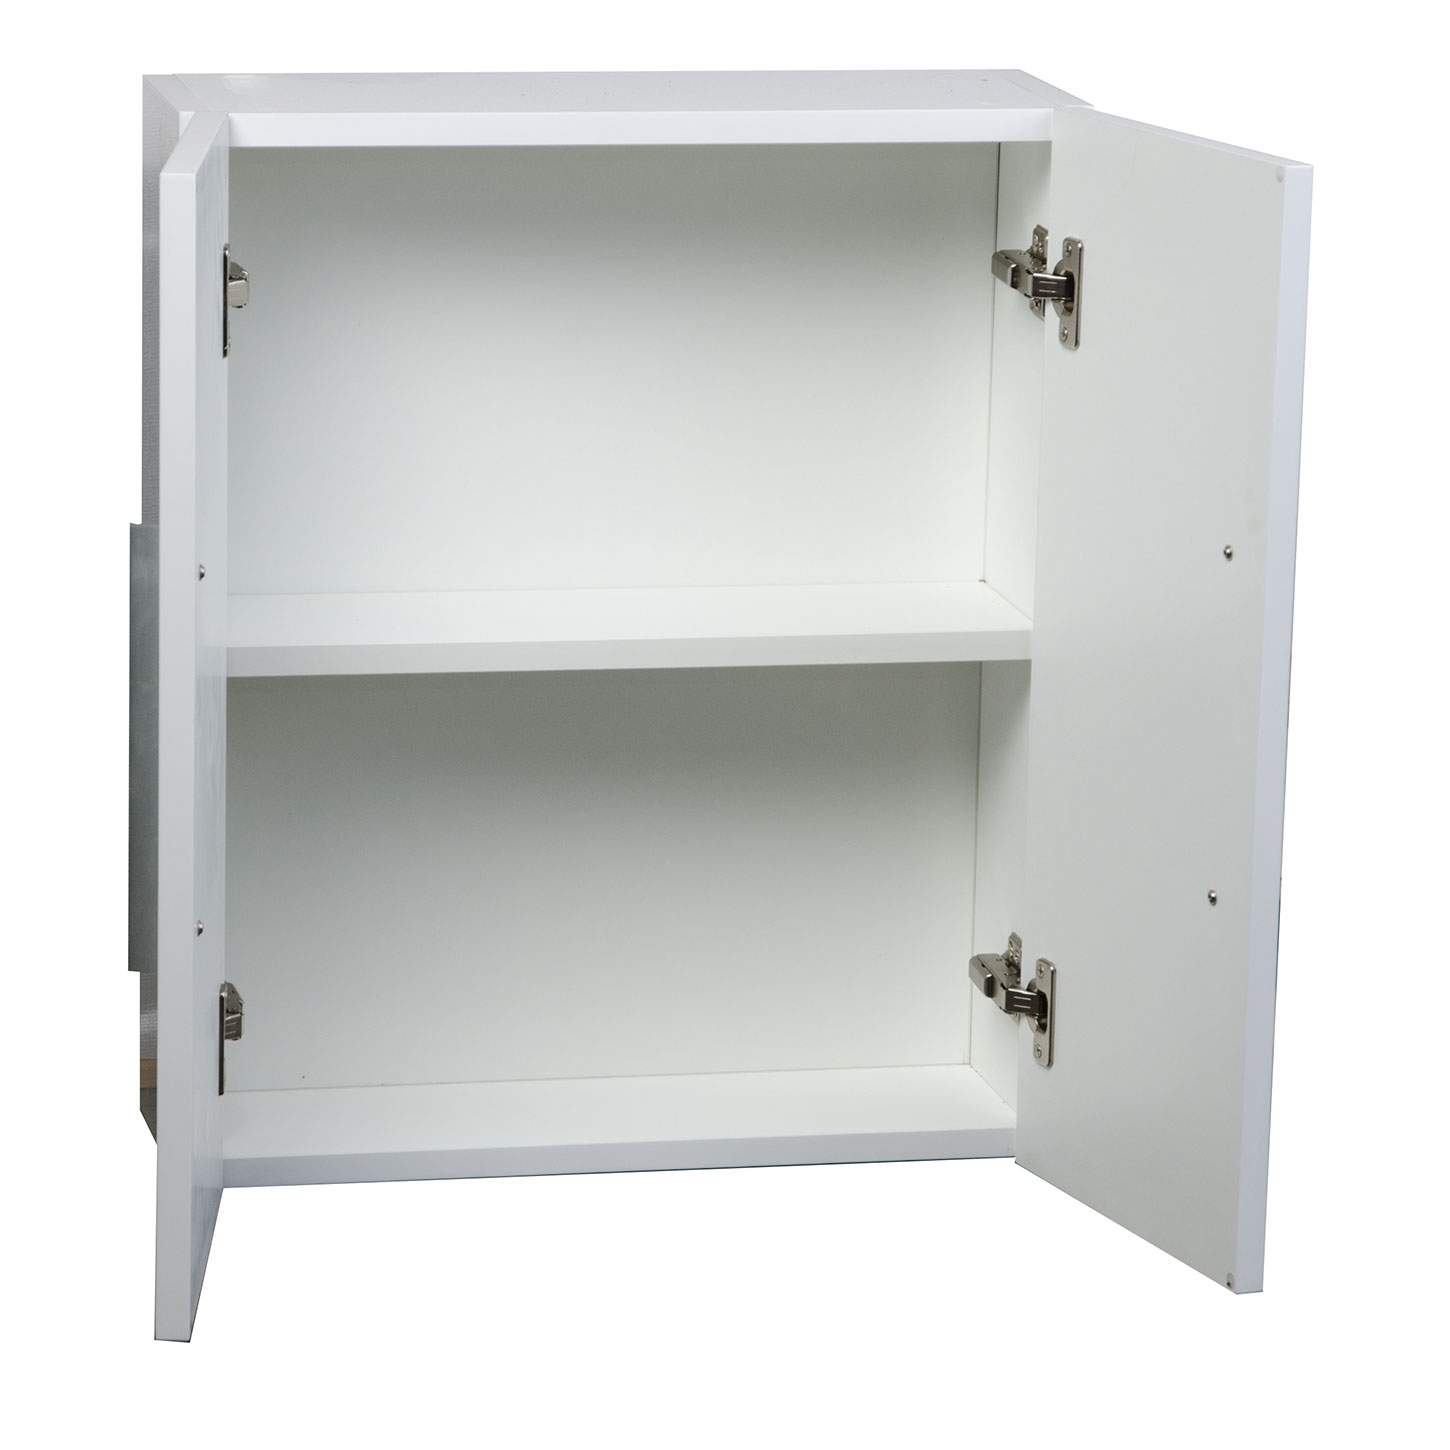 Buy over the toilet wall cabinet in glossy white 20 5 in for Over the toilet cabinet